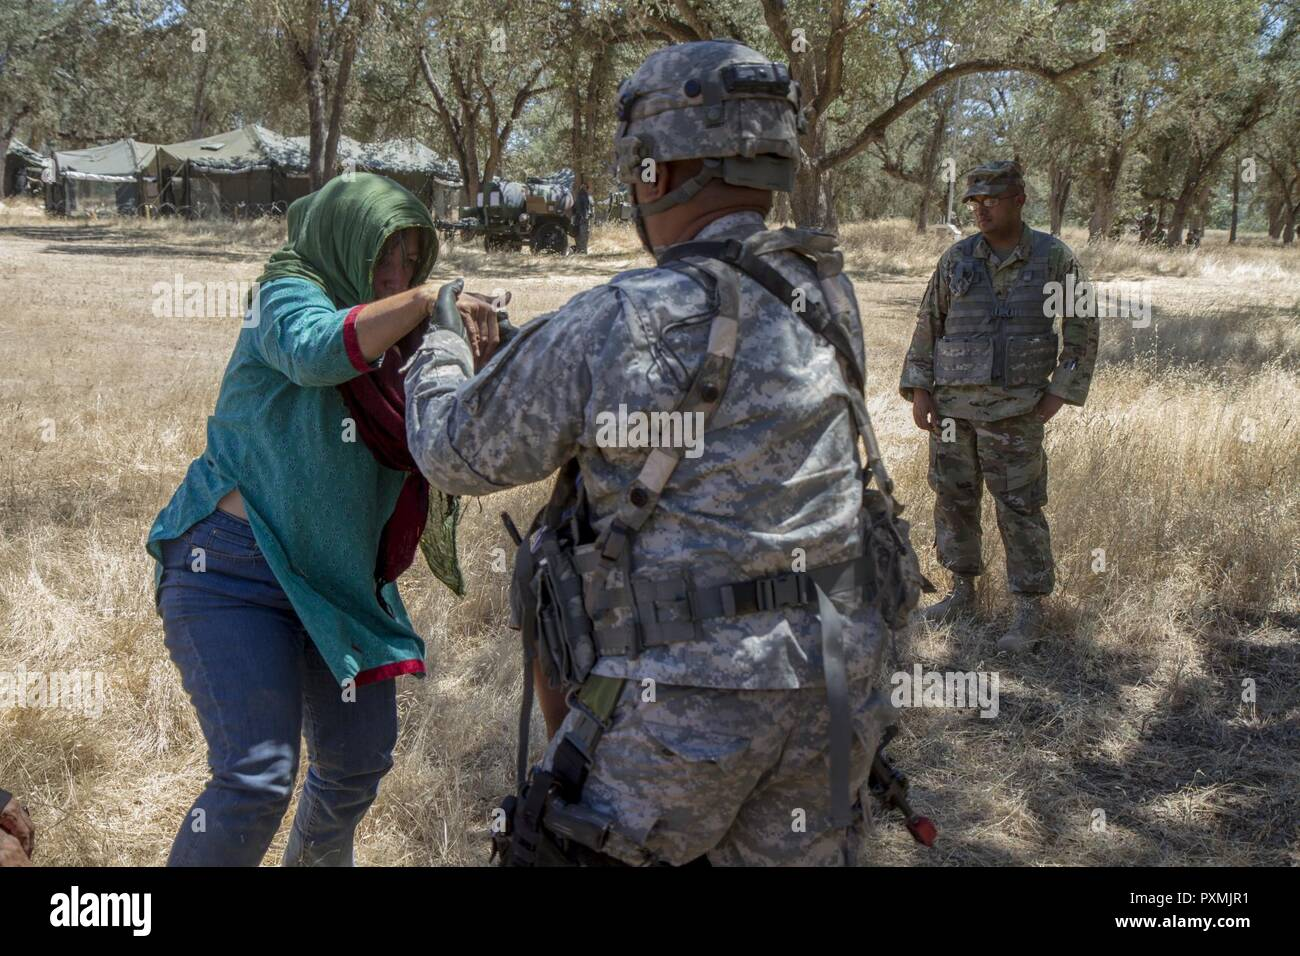 U.S. Army Staff Sgt. Eric Manalansan, 491st Military Police Company out of Riverside, Calif., helps Ms. Rebecca Riel, computer illustrator from Lockwood, Calif., to her feet, while she is role playing as a local villager in their training exercise during the 91st Training Division's Warrior Exercise (WAREX) 91-17-03 on Fort Hunter Liggett, Calif. on June 15, 2017. Their training scenario involved providing medical aid for local villagers entering their Tactical Assembly Area, this is to prepare them for similar encounters they may face while deployed overseas. - Stock Image